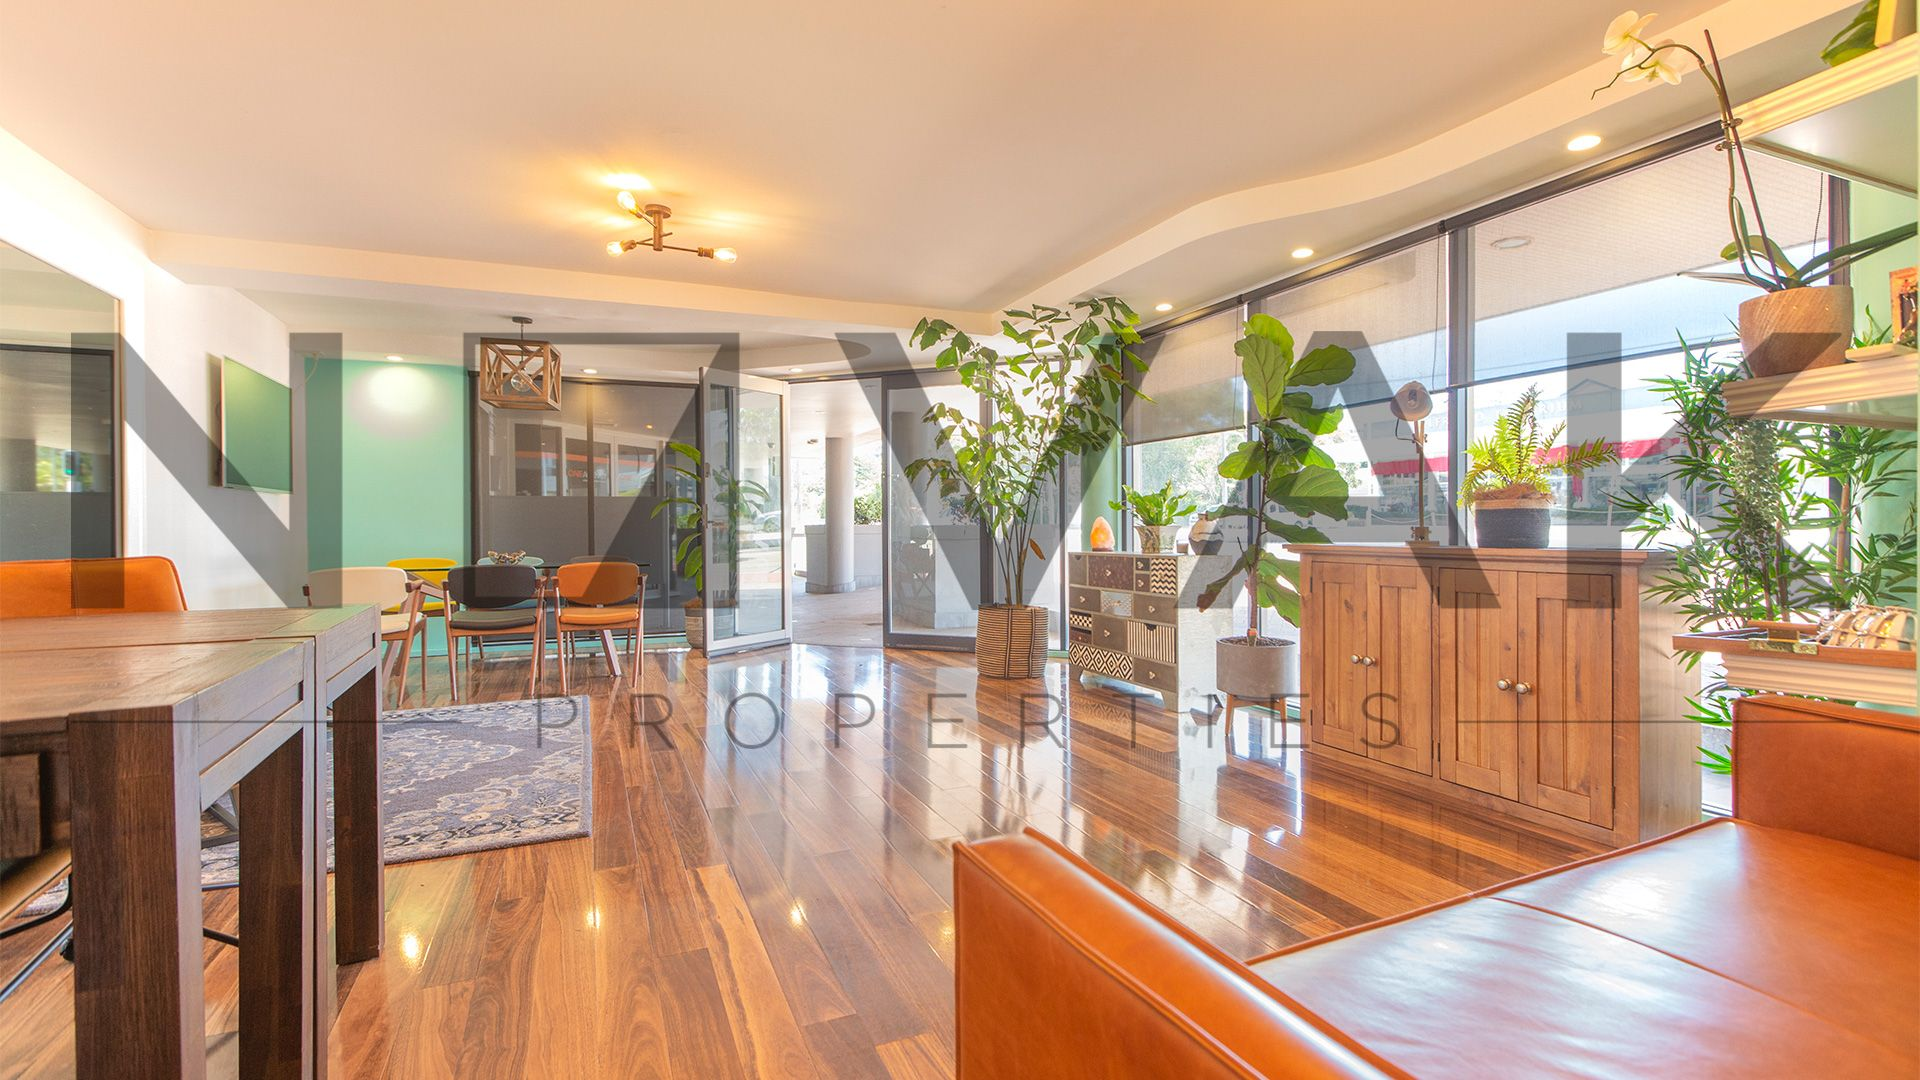 NEW CO-WORKING SPACE IN COLLAROY - TAKE IT BEFORE IT GOES!